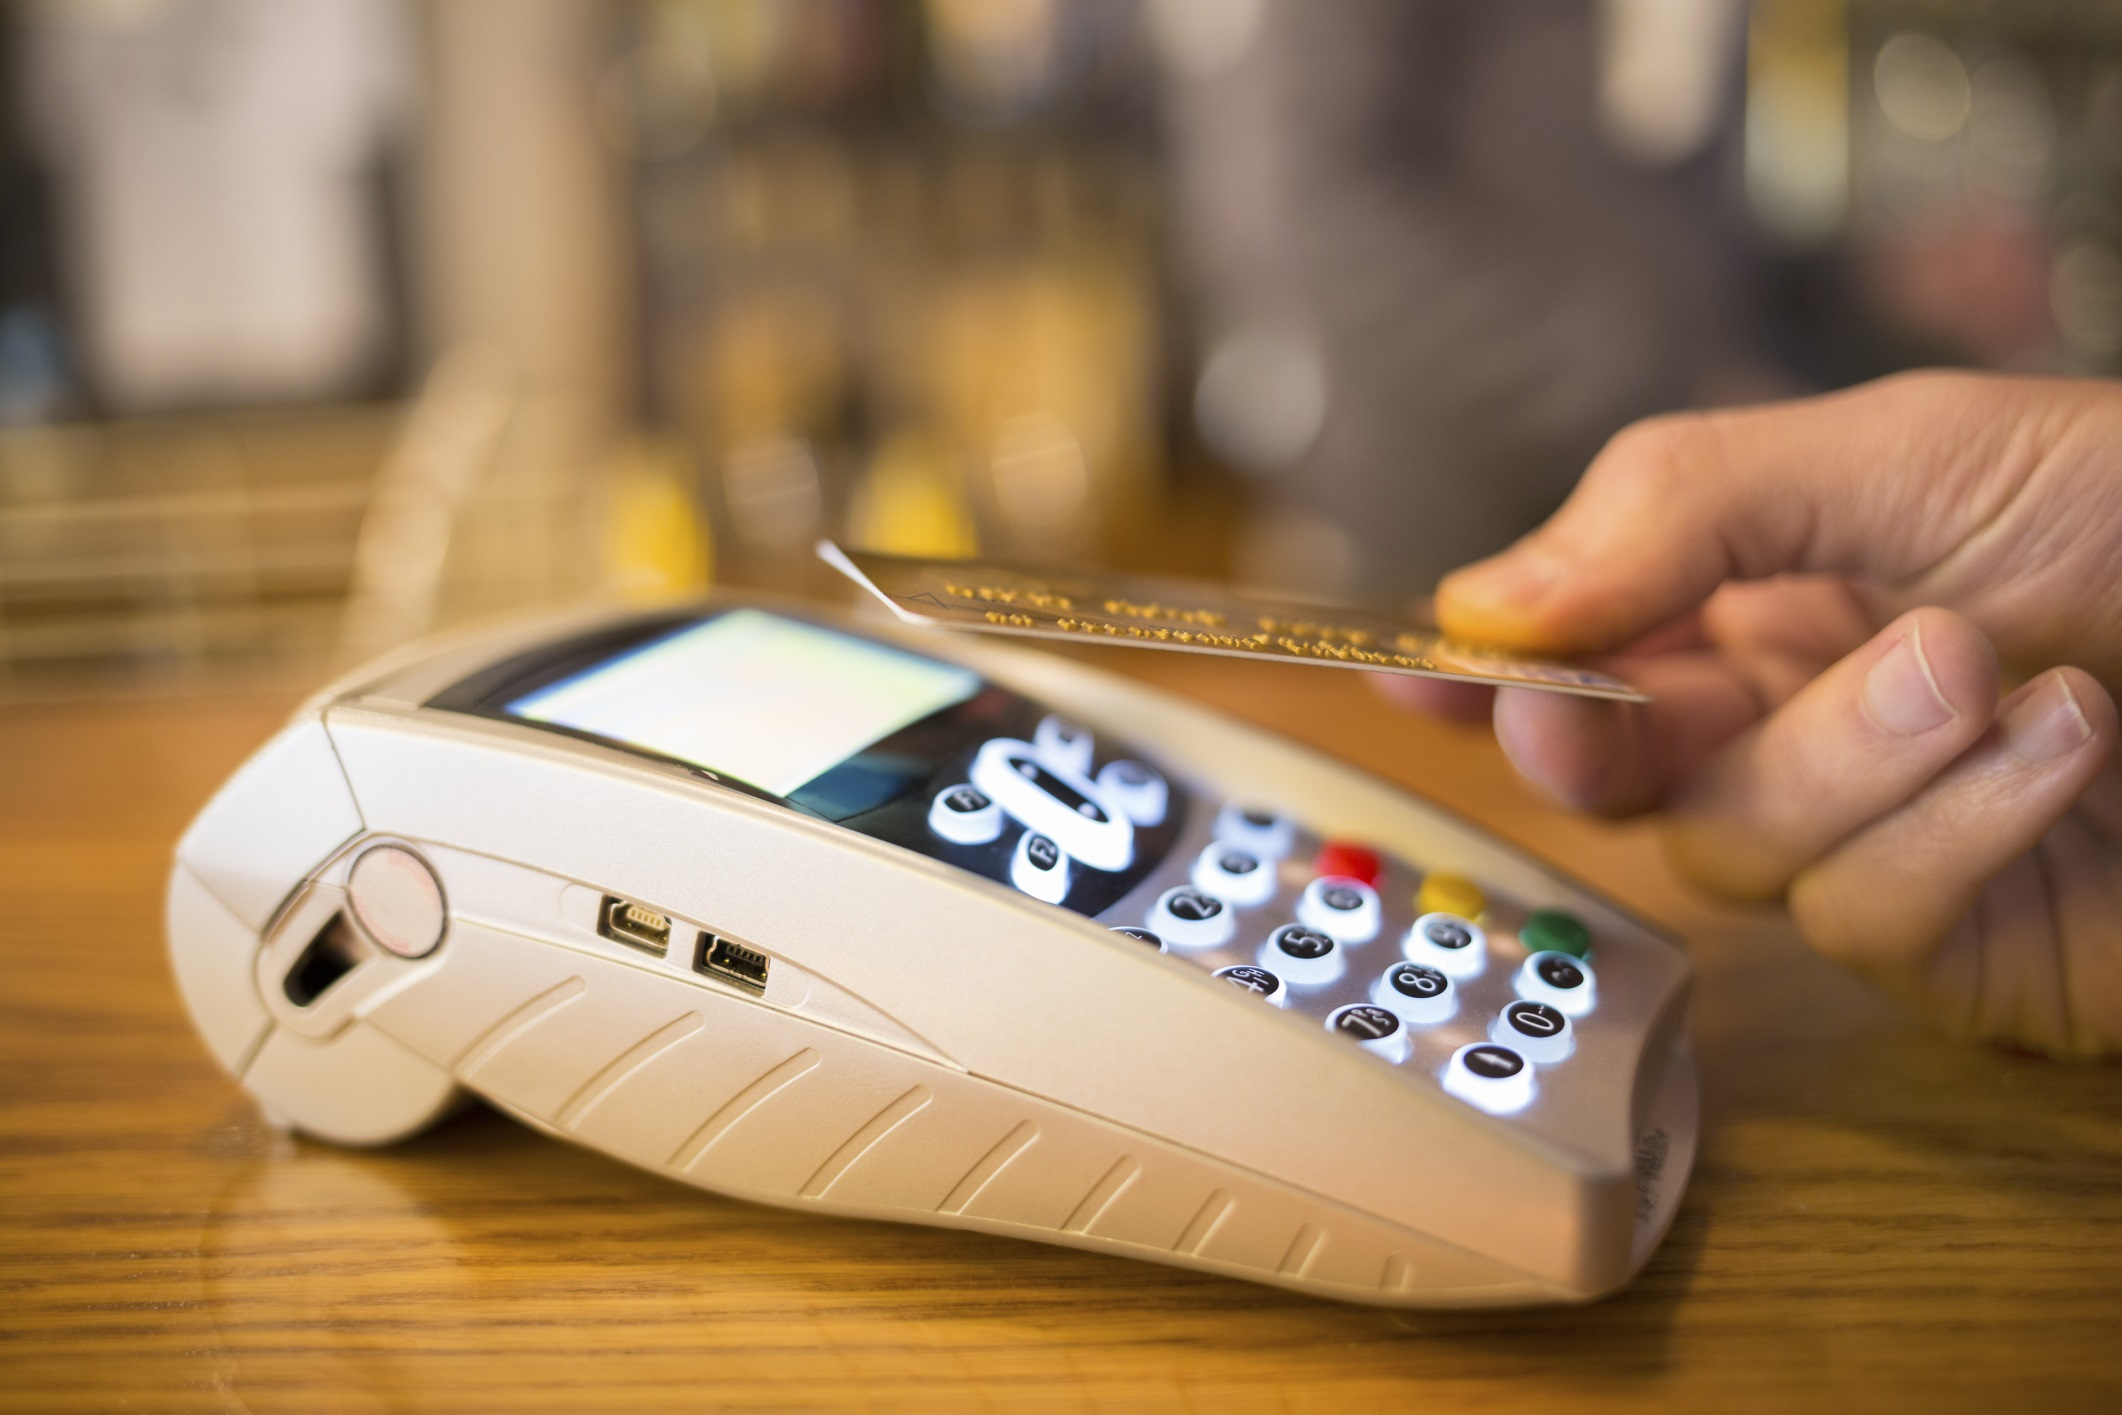 Man paying with NFC technology on credit card, restaurant, shop